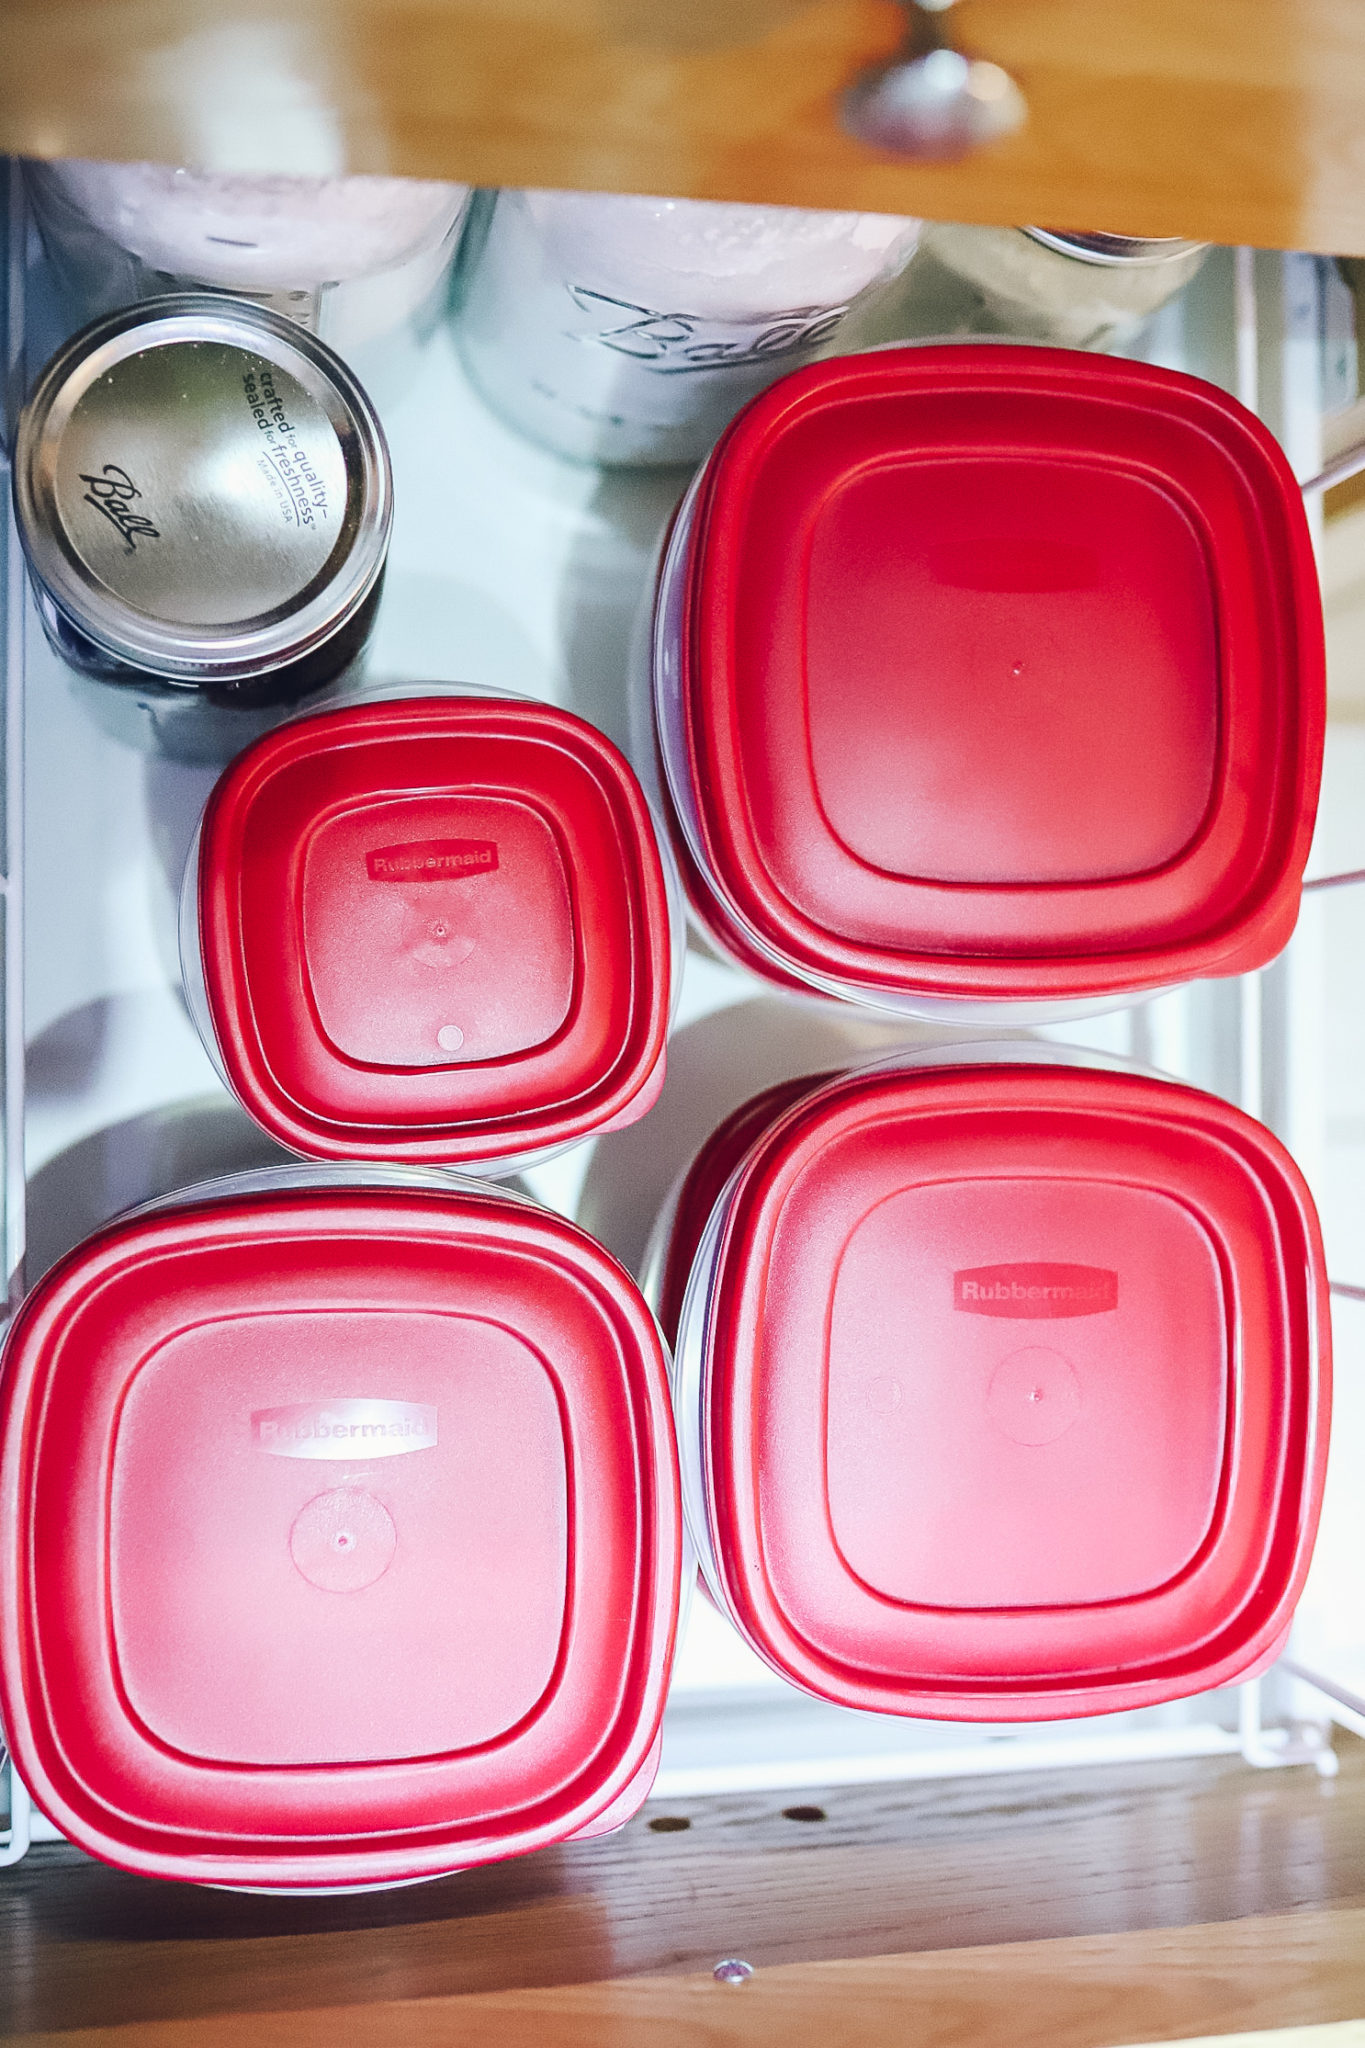 How to Organize your Kitchen Cabinets with Rubbermaid® Easy Find Lids™ and Enter to Win a Pantry Makeover valued at $5,000! - Lifestyle and Mom Blog, Crazy Life with Littles @rubbermaid #easyfindwin #rubbermaid